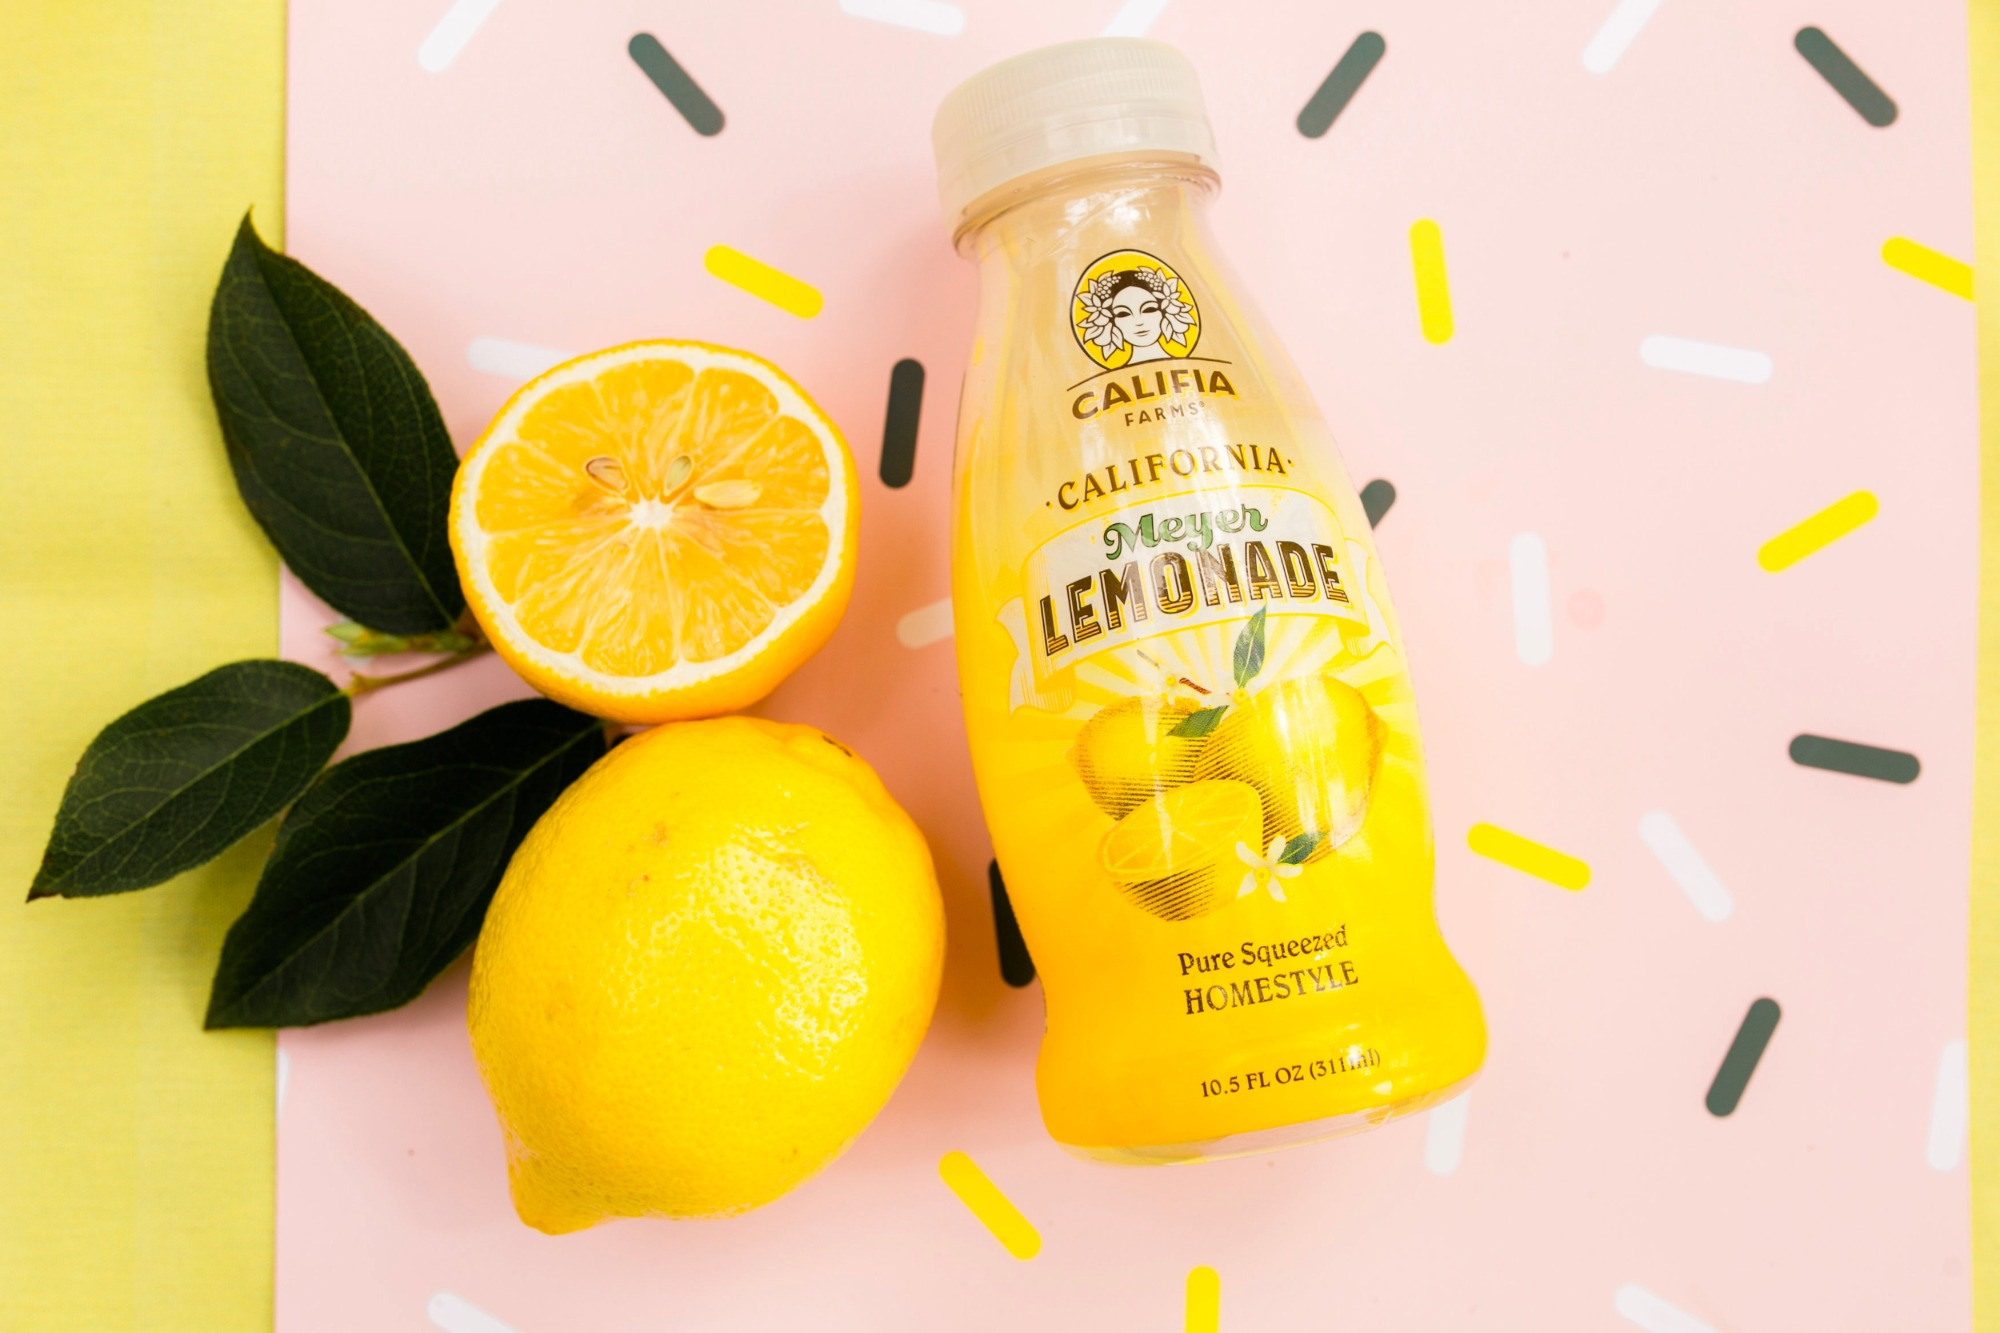 Califia Farms lemonade from Lemonade Stand Birthday Party by Forrest and J. | Black Twine